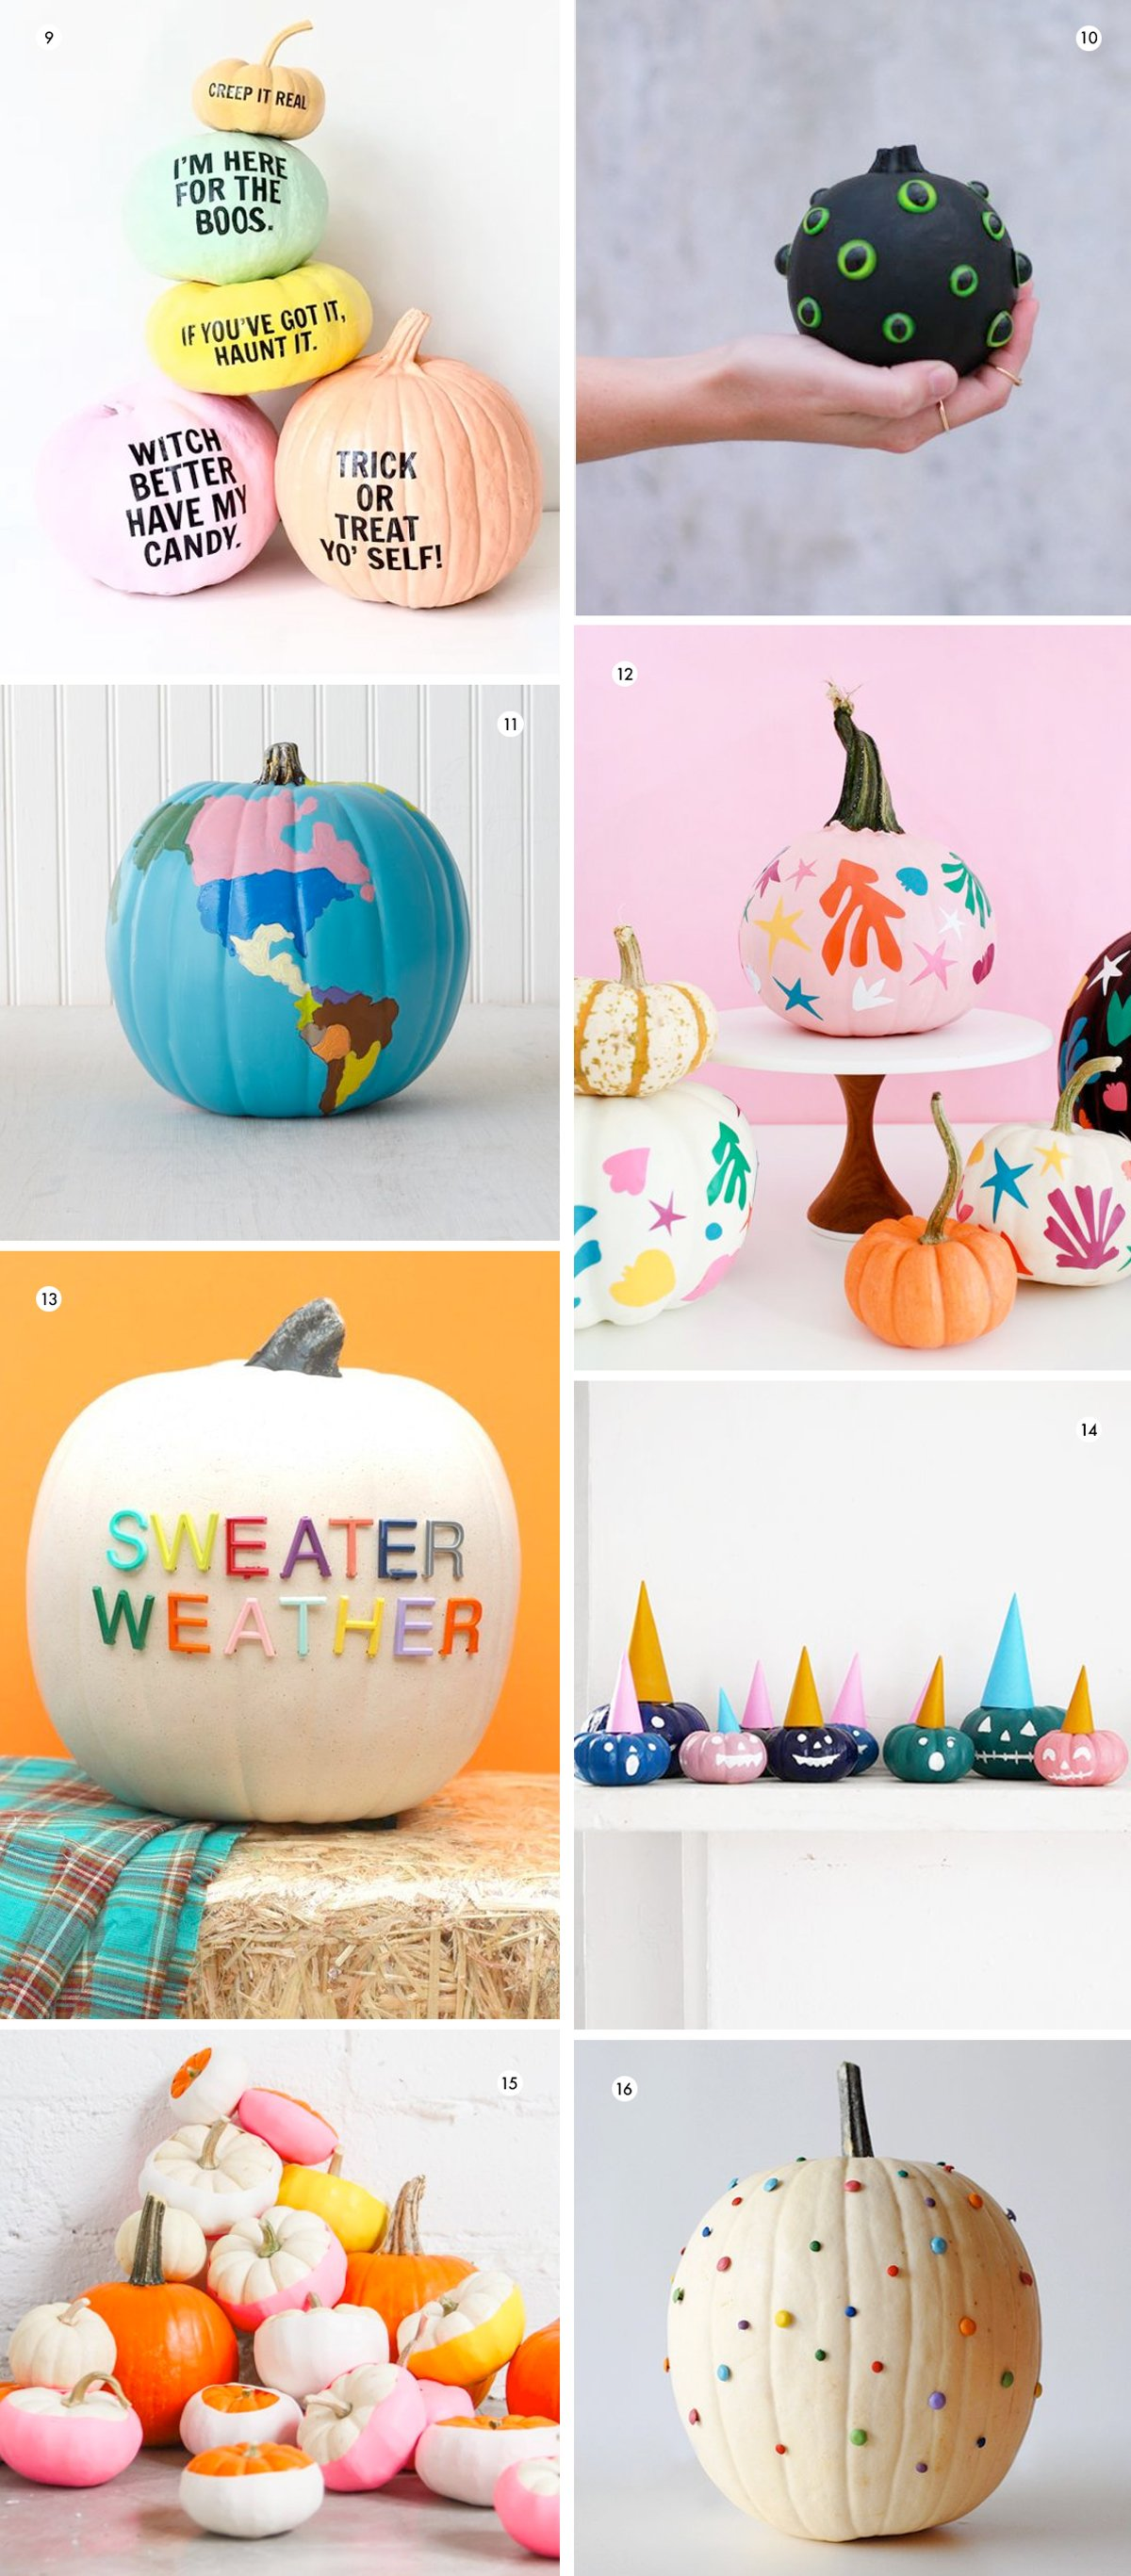 Colorful DIY ideas for pumpkin decorating without carving anything